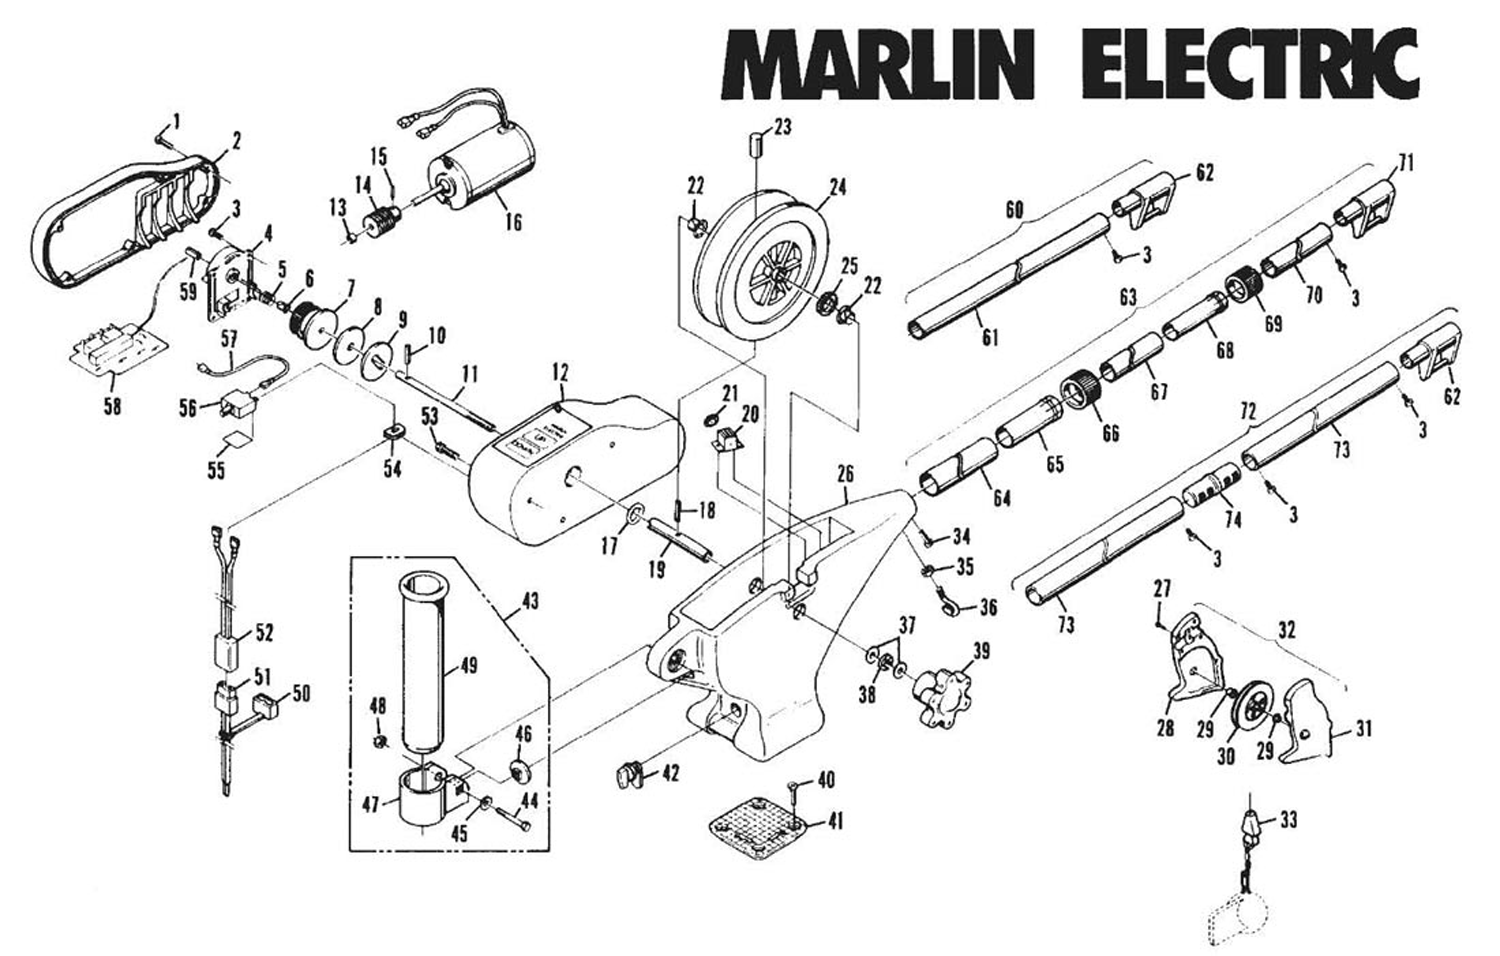 Order Cannon Marlin Electric Downrigger Parts From Fish307